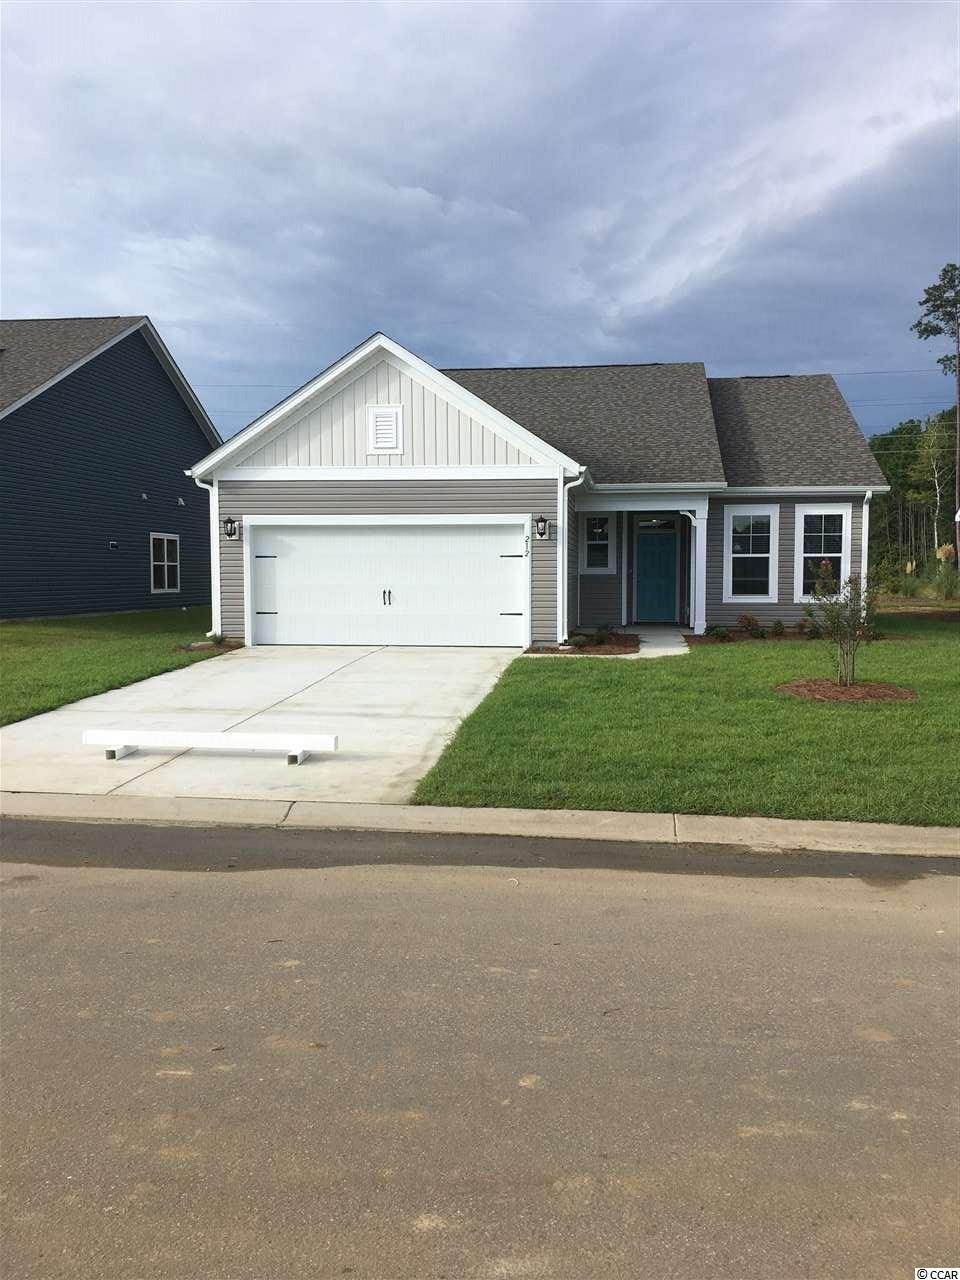 Welcome to Surfside Plantation, a charming coastal Beazer Homes community with Natural Gas and is located 3 miles to the beach. This home is the Camden plan and is under construction with an estimated August completion. 3 BD, 2 BA, 2-car garage home on 1 level. Vaulted ceilings, bay window, are rear covered porch are included. Vinyl plank flooring in the main living spaces, ceramic tile in bathrooms and laundry, quartz countertops, white cabinetry, tile backsplash, and pendant lighting over the island. The kitchen is massive and is a must see! The master bathroom features a double vanity, walk-in closet, linen storage, and a 5' tile shower. Home is equipped with a stainless gas range, dishwasher, microwave, fridge, washer, dryer, ceiling fans, blinds, and gutters. Nickel faucets and lighting throughout. Home is being built on a wooded-view homesite with a fully sodded yard and professional landscape package. *Pictures shown are from previously built homes. Listing details are subject to change. Please consult the on-site New Home Counselor for all details.